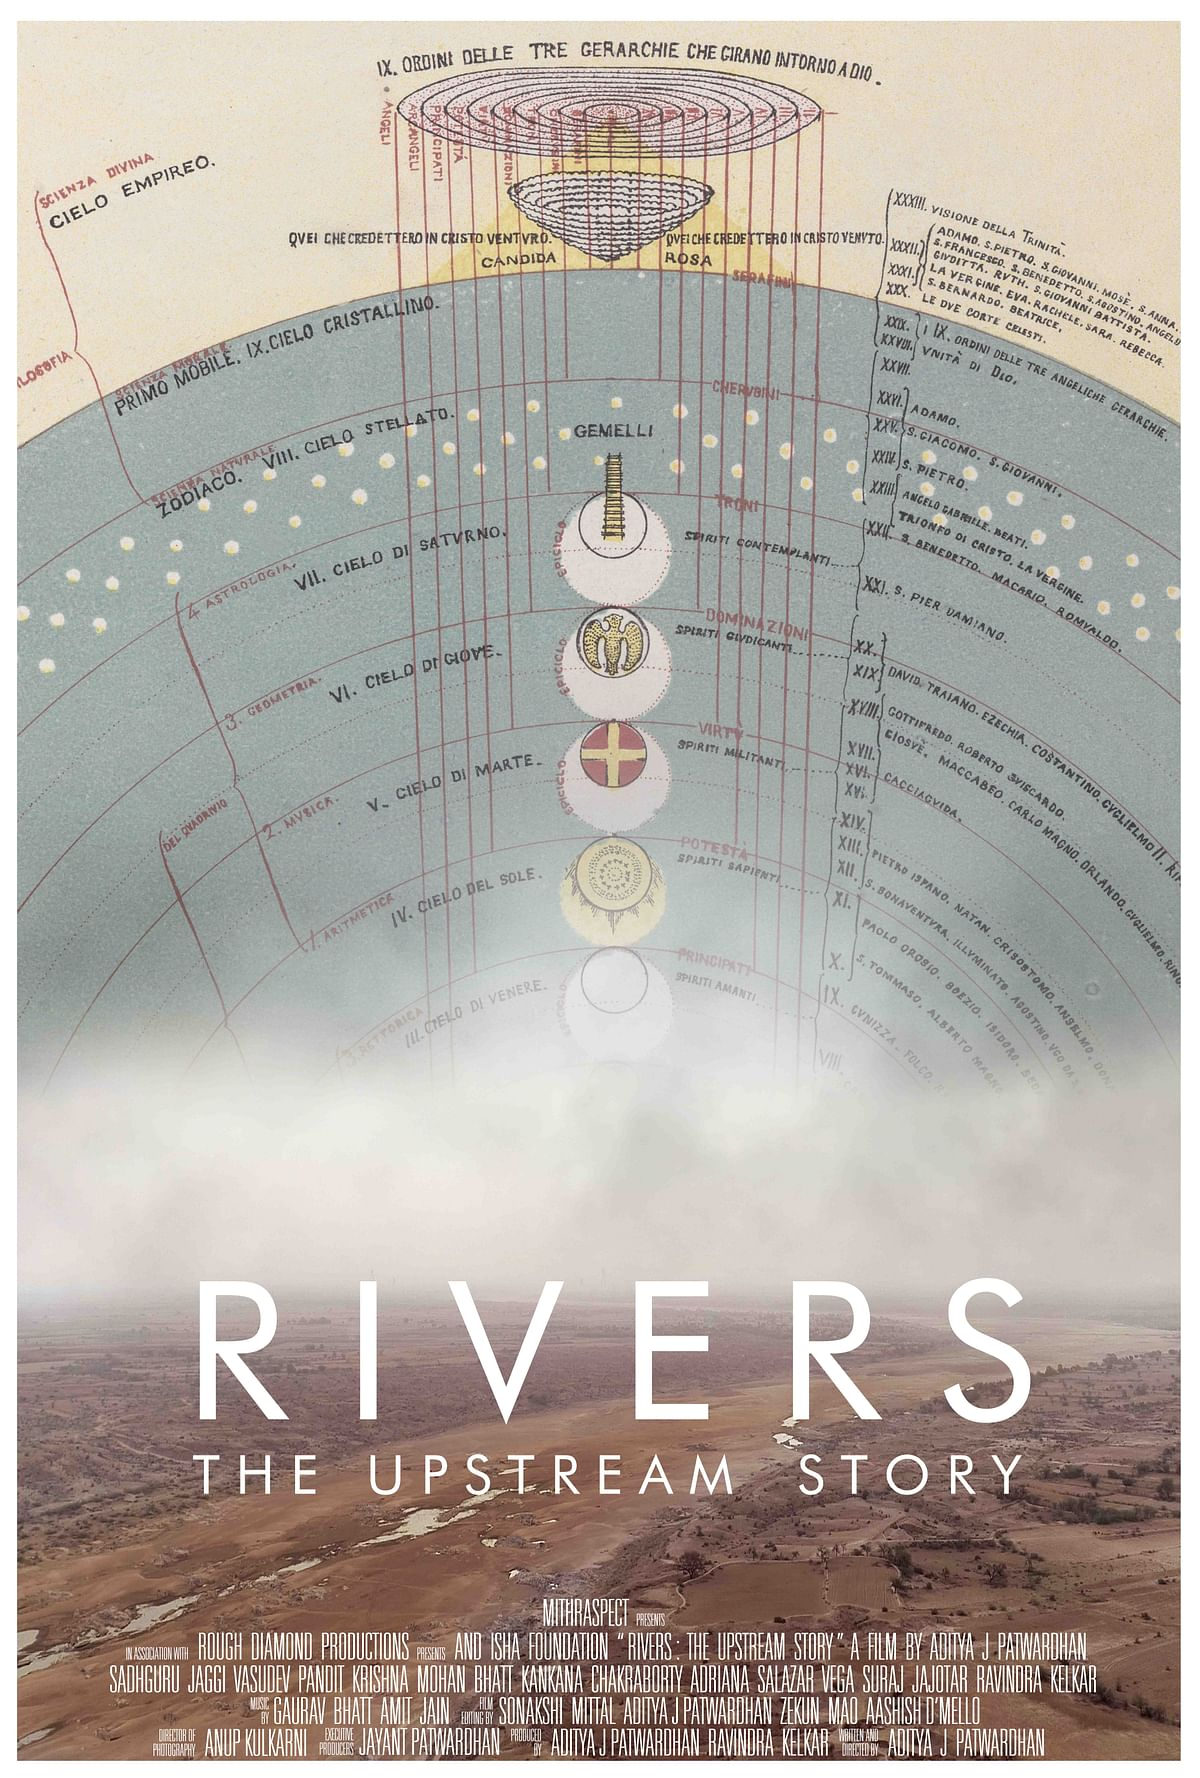 A poster of <i>Rivers the Upstream Story.&nbsp;</i>